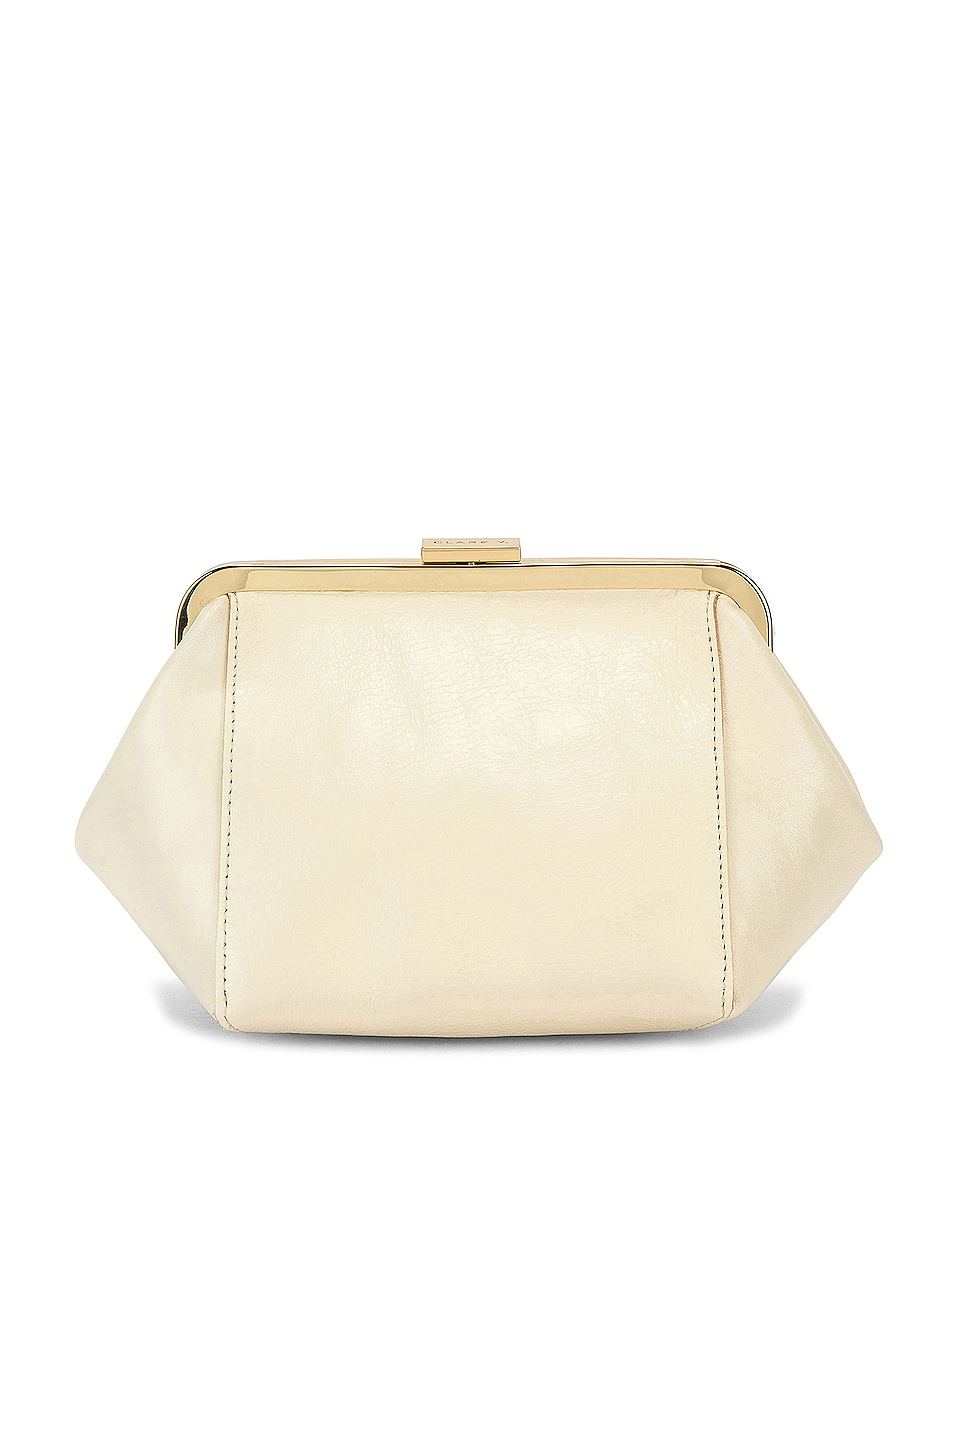 Clare V. Le Box Bag in Cream